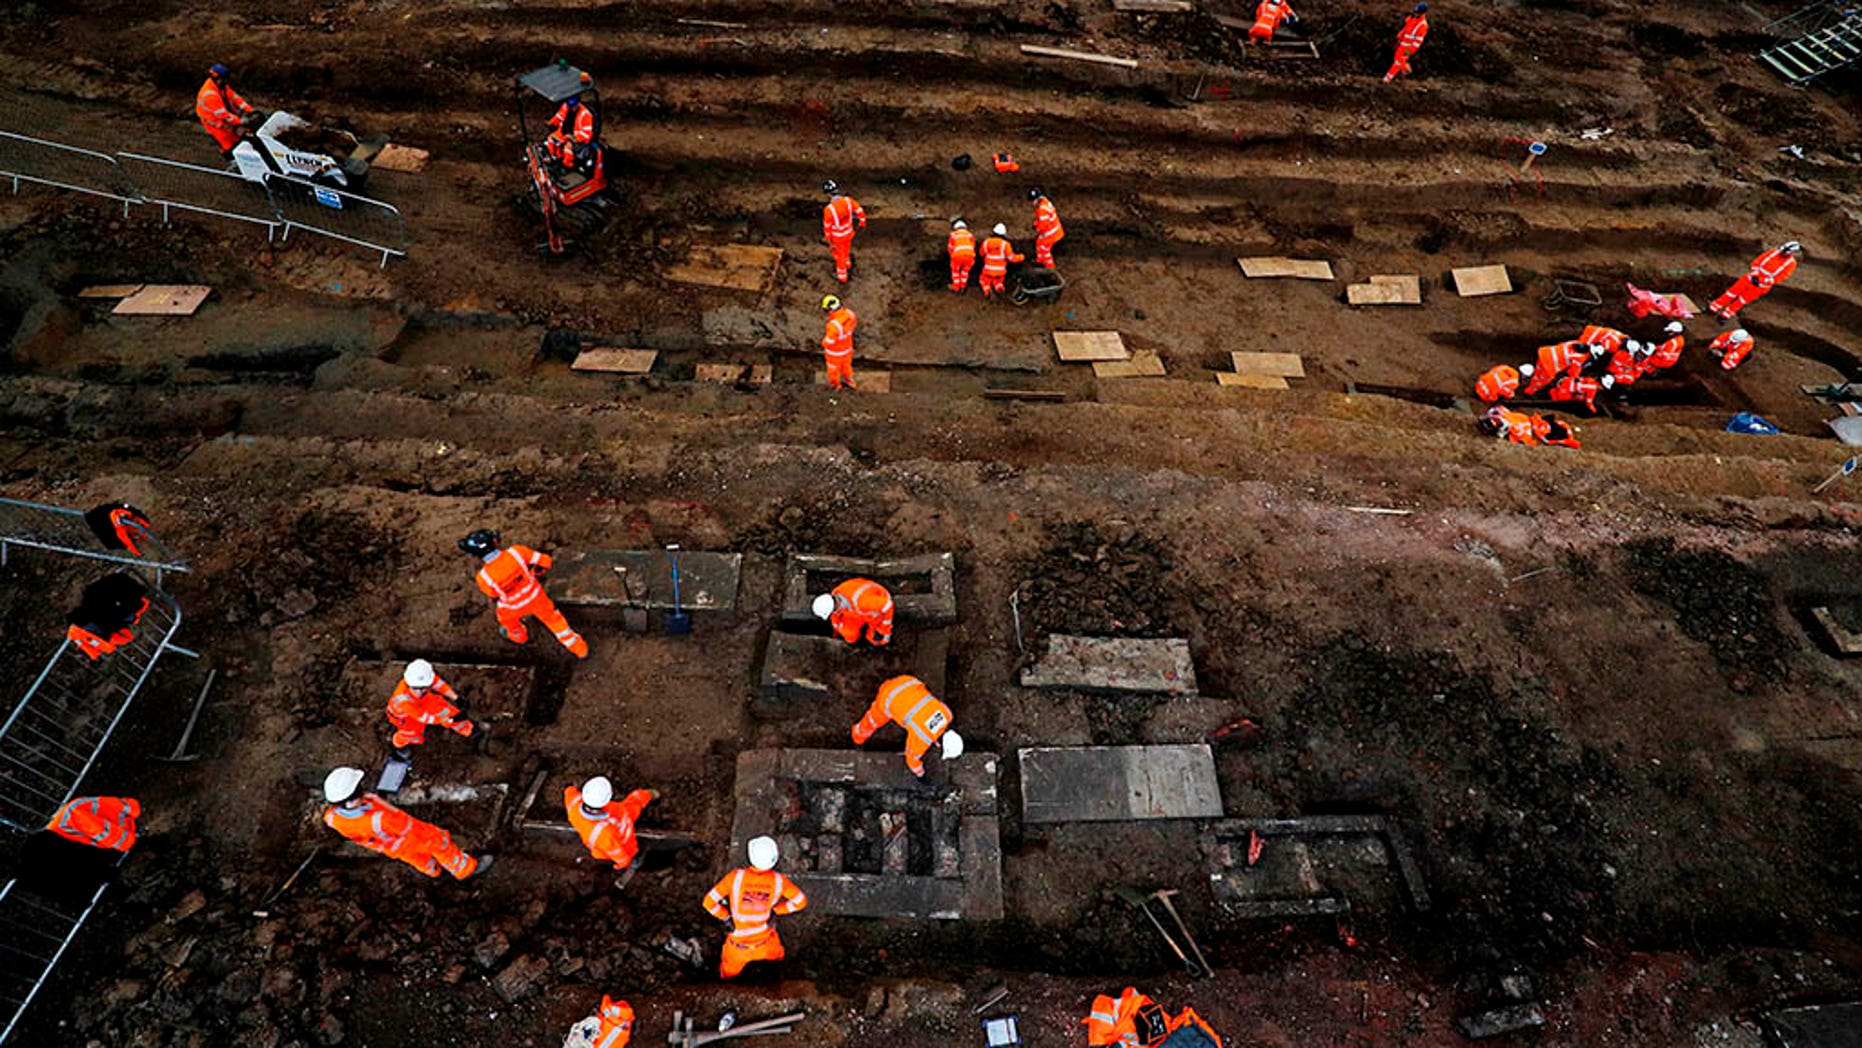 Field archaeologists work on the excavation of a late 18th to mid 19th-century cemetery under St James Gardens near Euston train station in London on November 1, 2018, as part of the HS2 high-speed rail project. - Tucked behind one of London's busiest railway stations, a small army of archaeologists shovel thick clay as they clear a vast burial site to make way for a new train line.  (Photo by Adrian DENNIS / AFP)